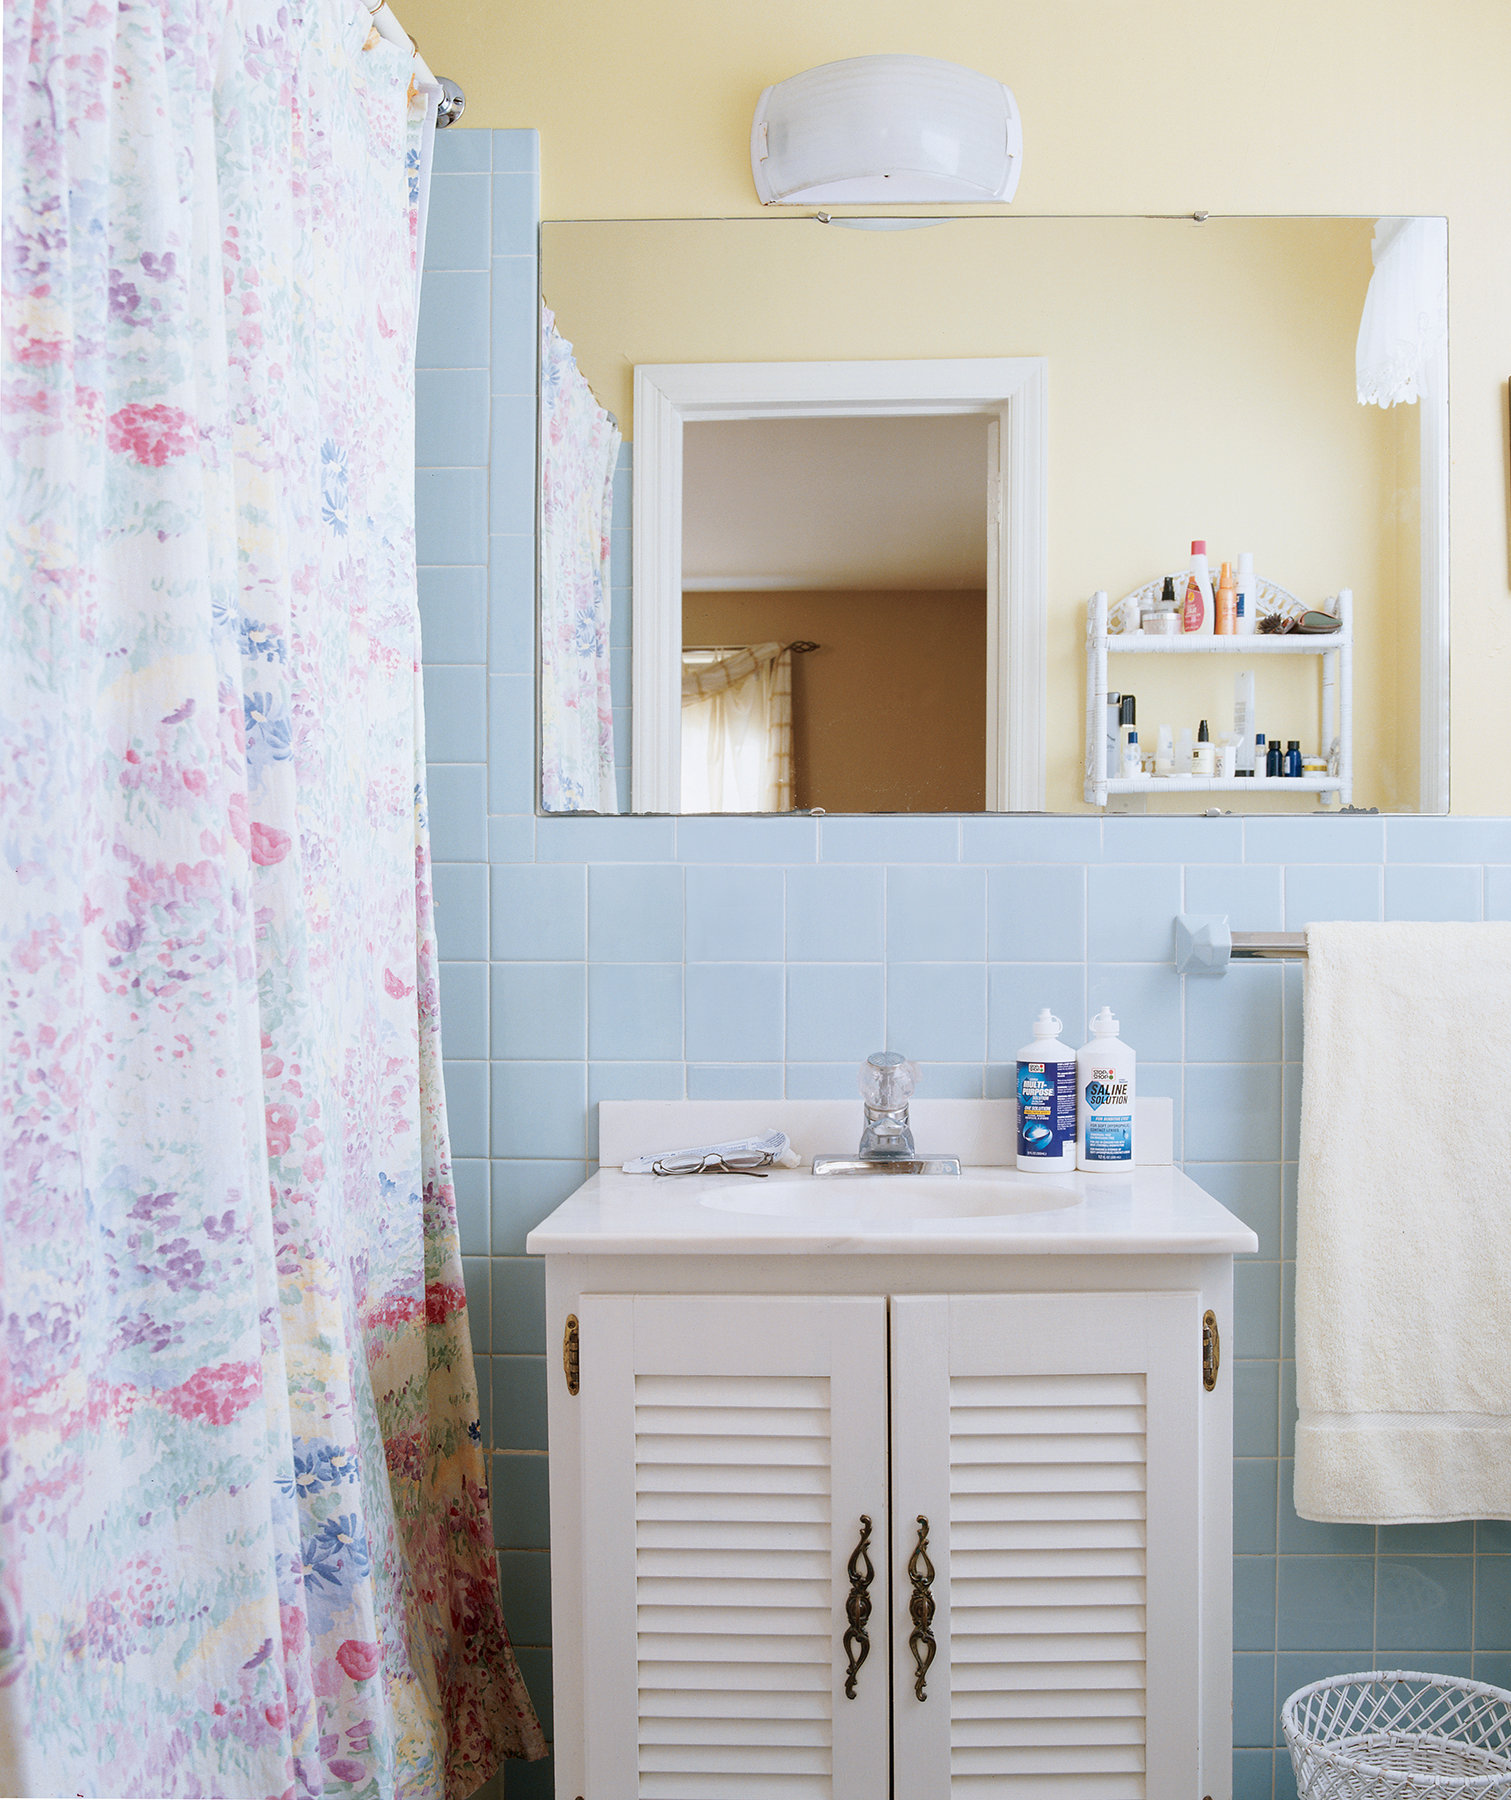 Cleaning Guide How To Clean Your Glass Shower Doors Properly: Deep-Clean Your Bathroom In 7 Steps